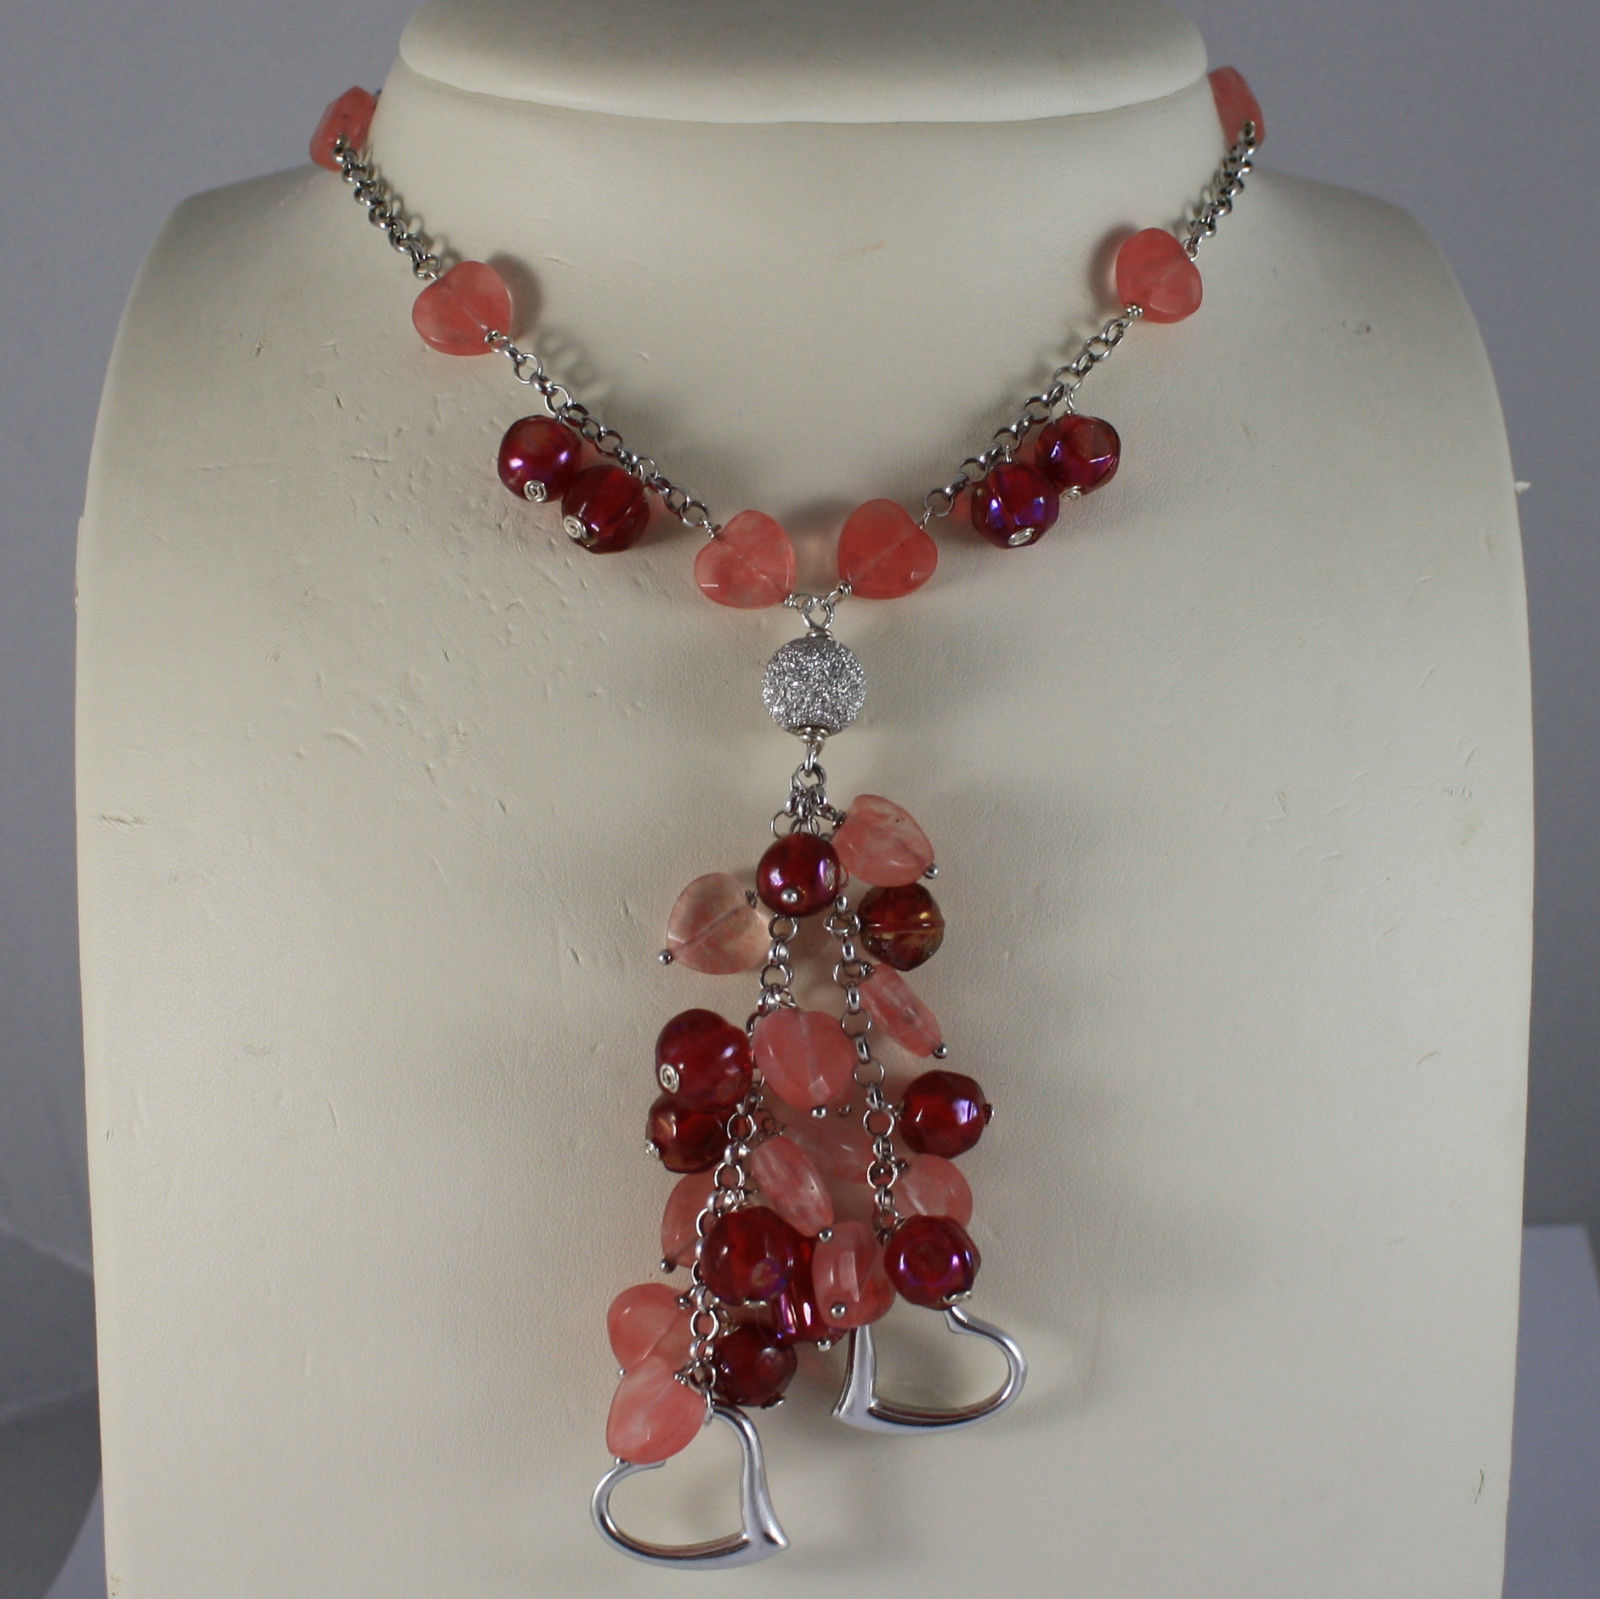 .925 SILVER RHODIUM NECKLACE WITH RED GLASS, CHERRY QUARTZ AND HEART PENDANT